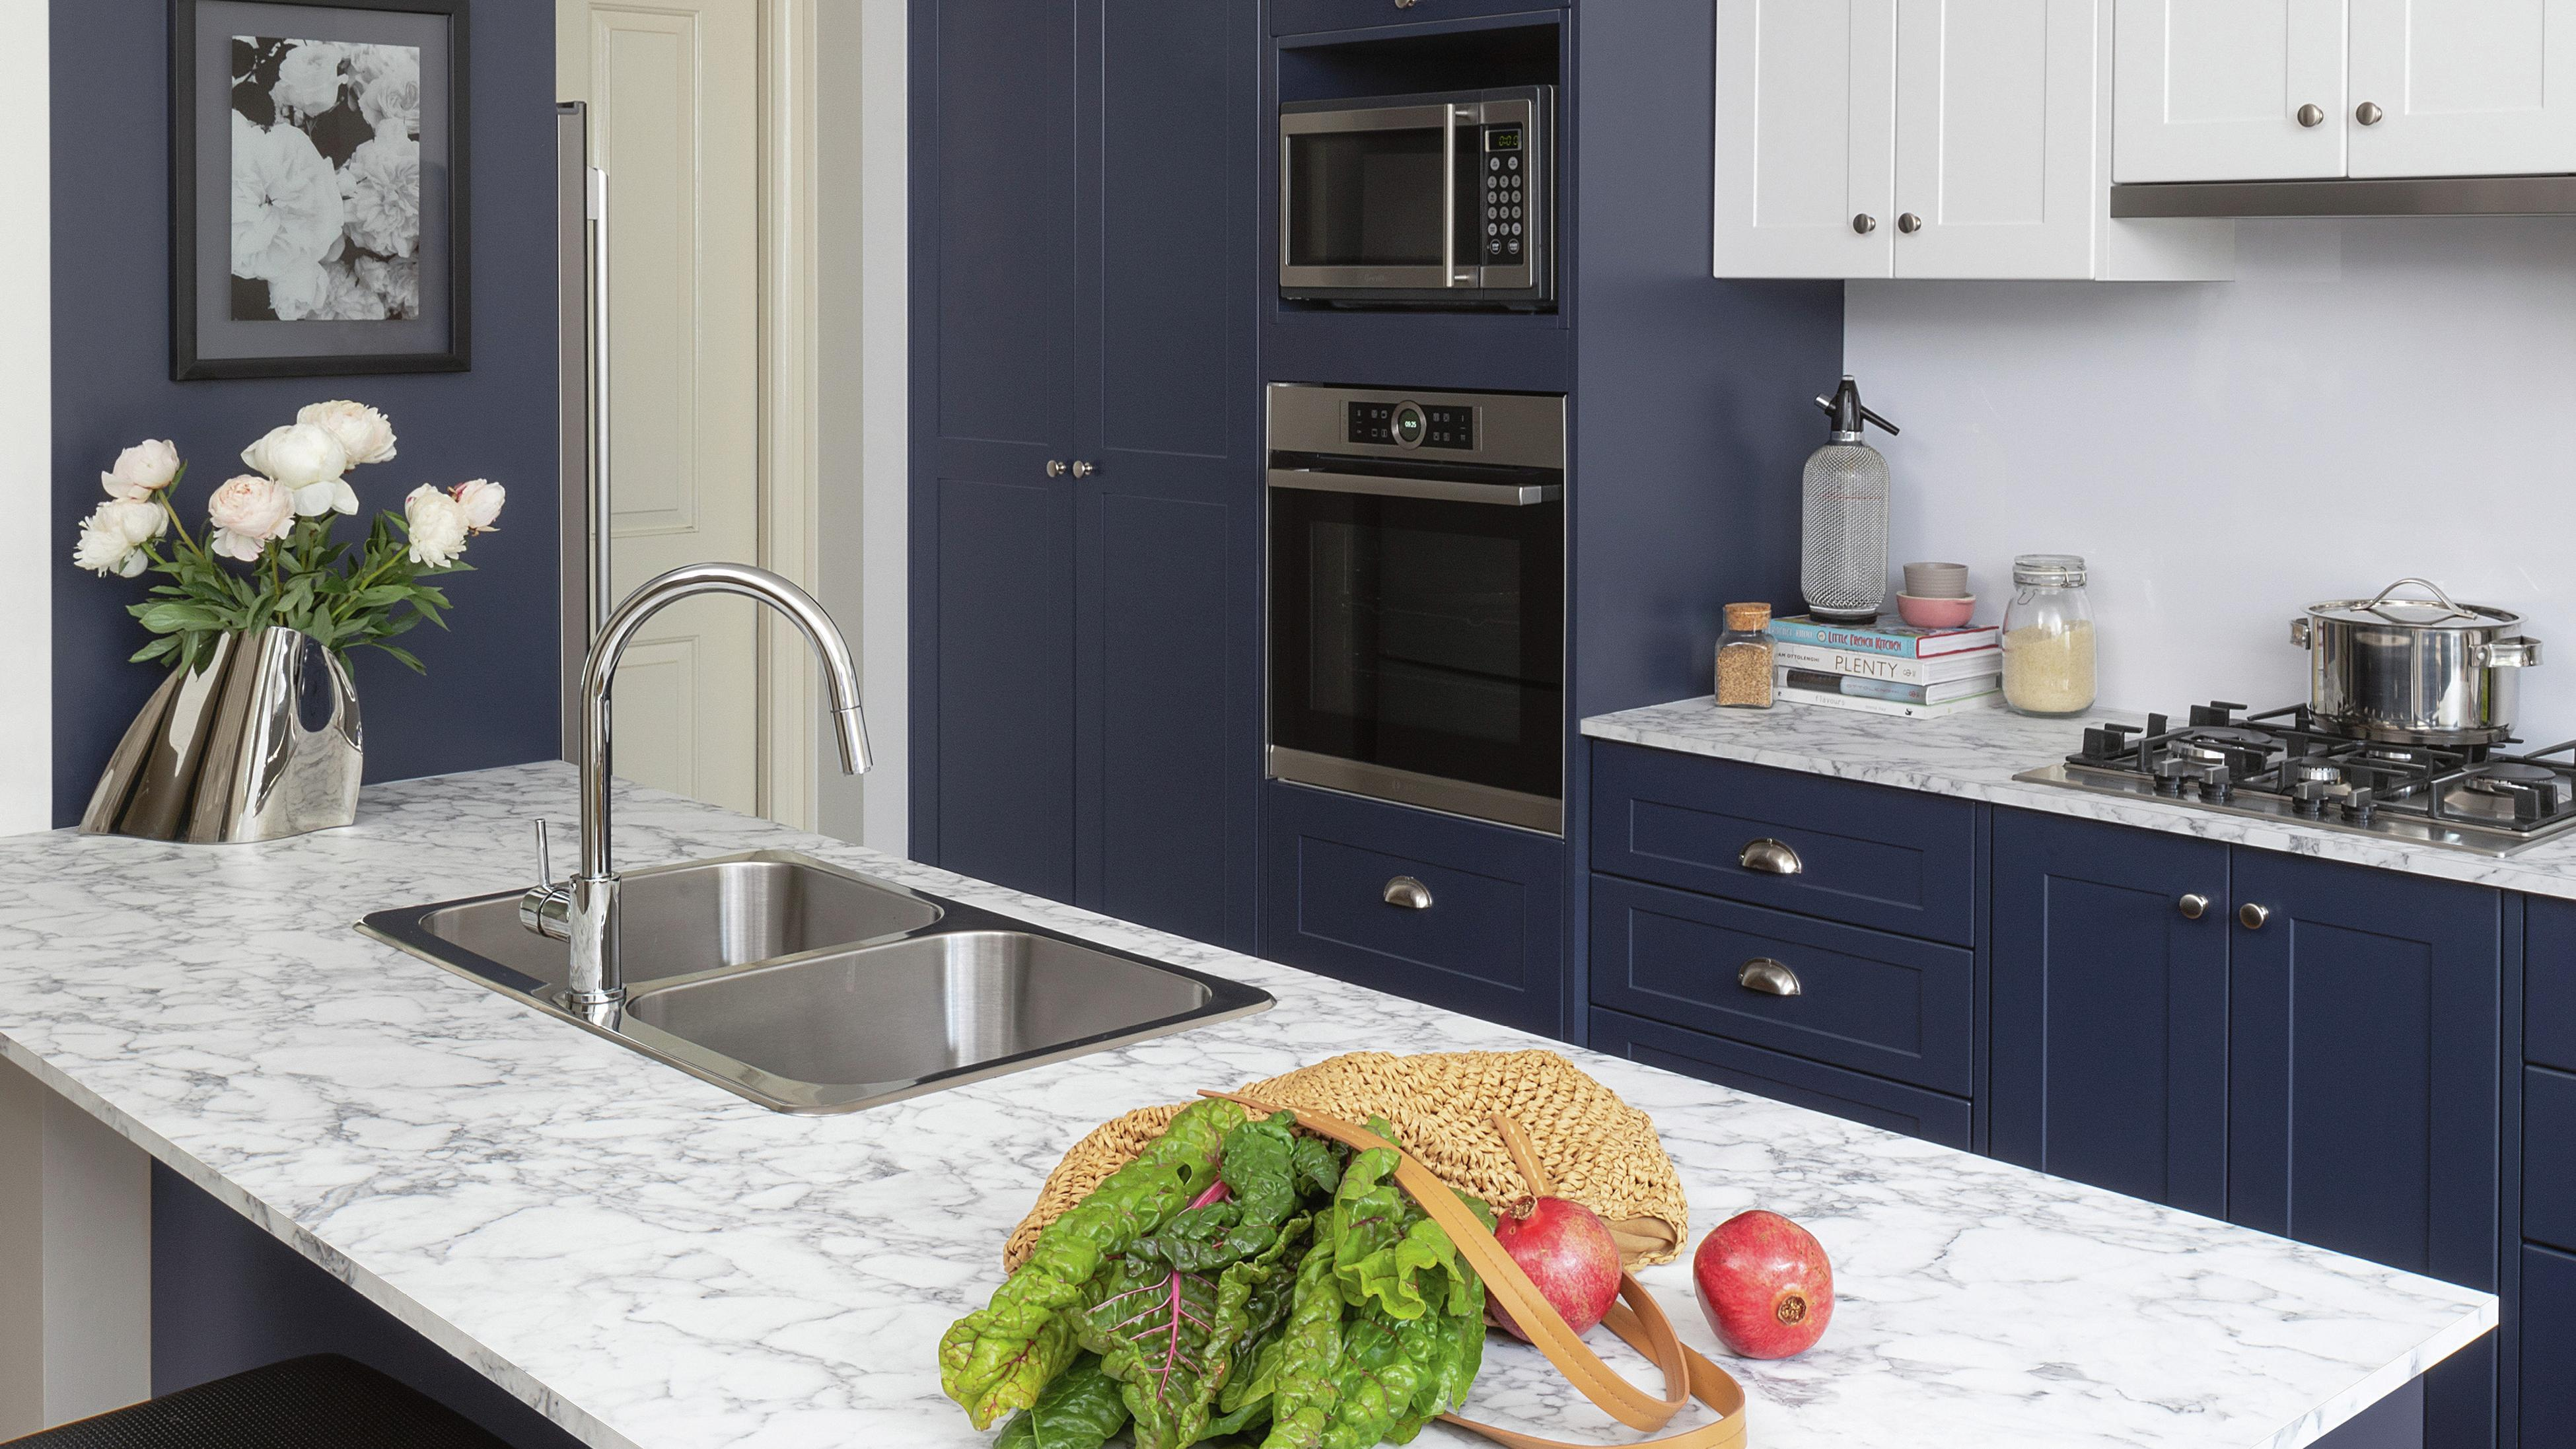 Kaboodle flat pack kitchen featuring marbled-look benchtop and navy cabinetry.